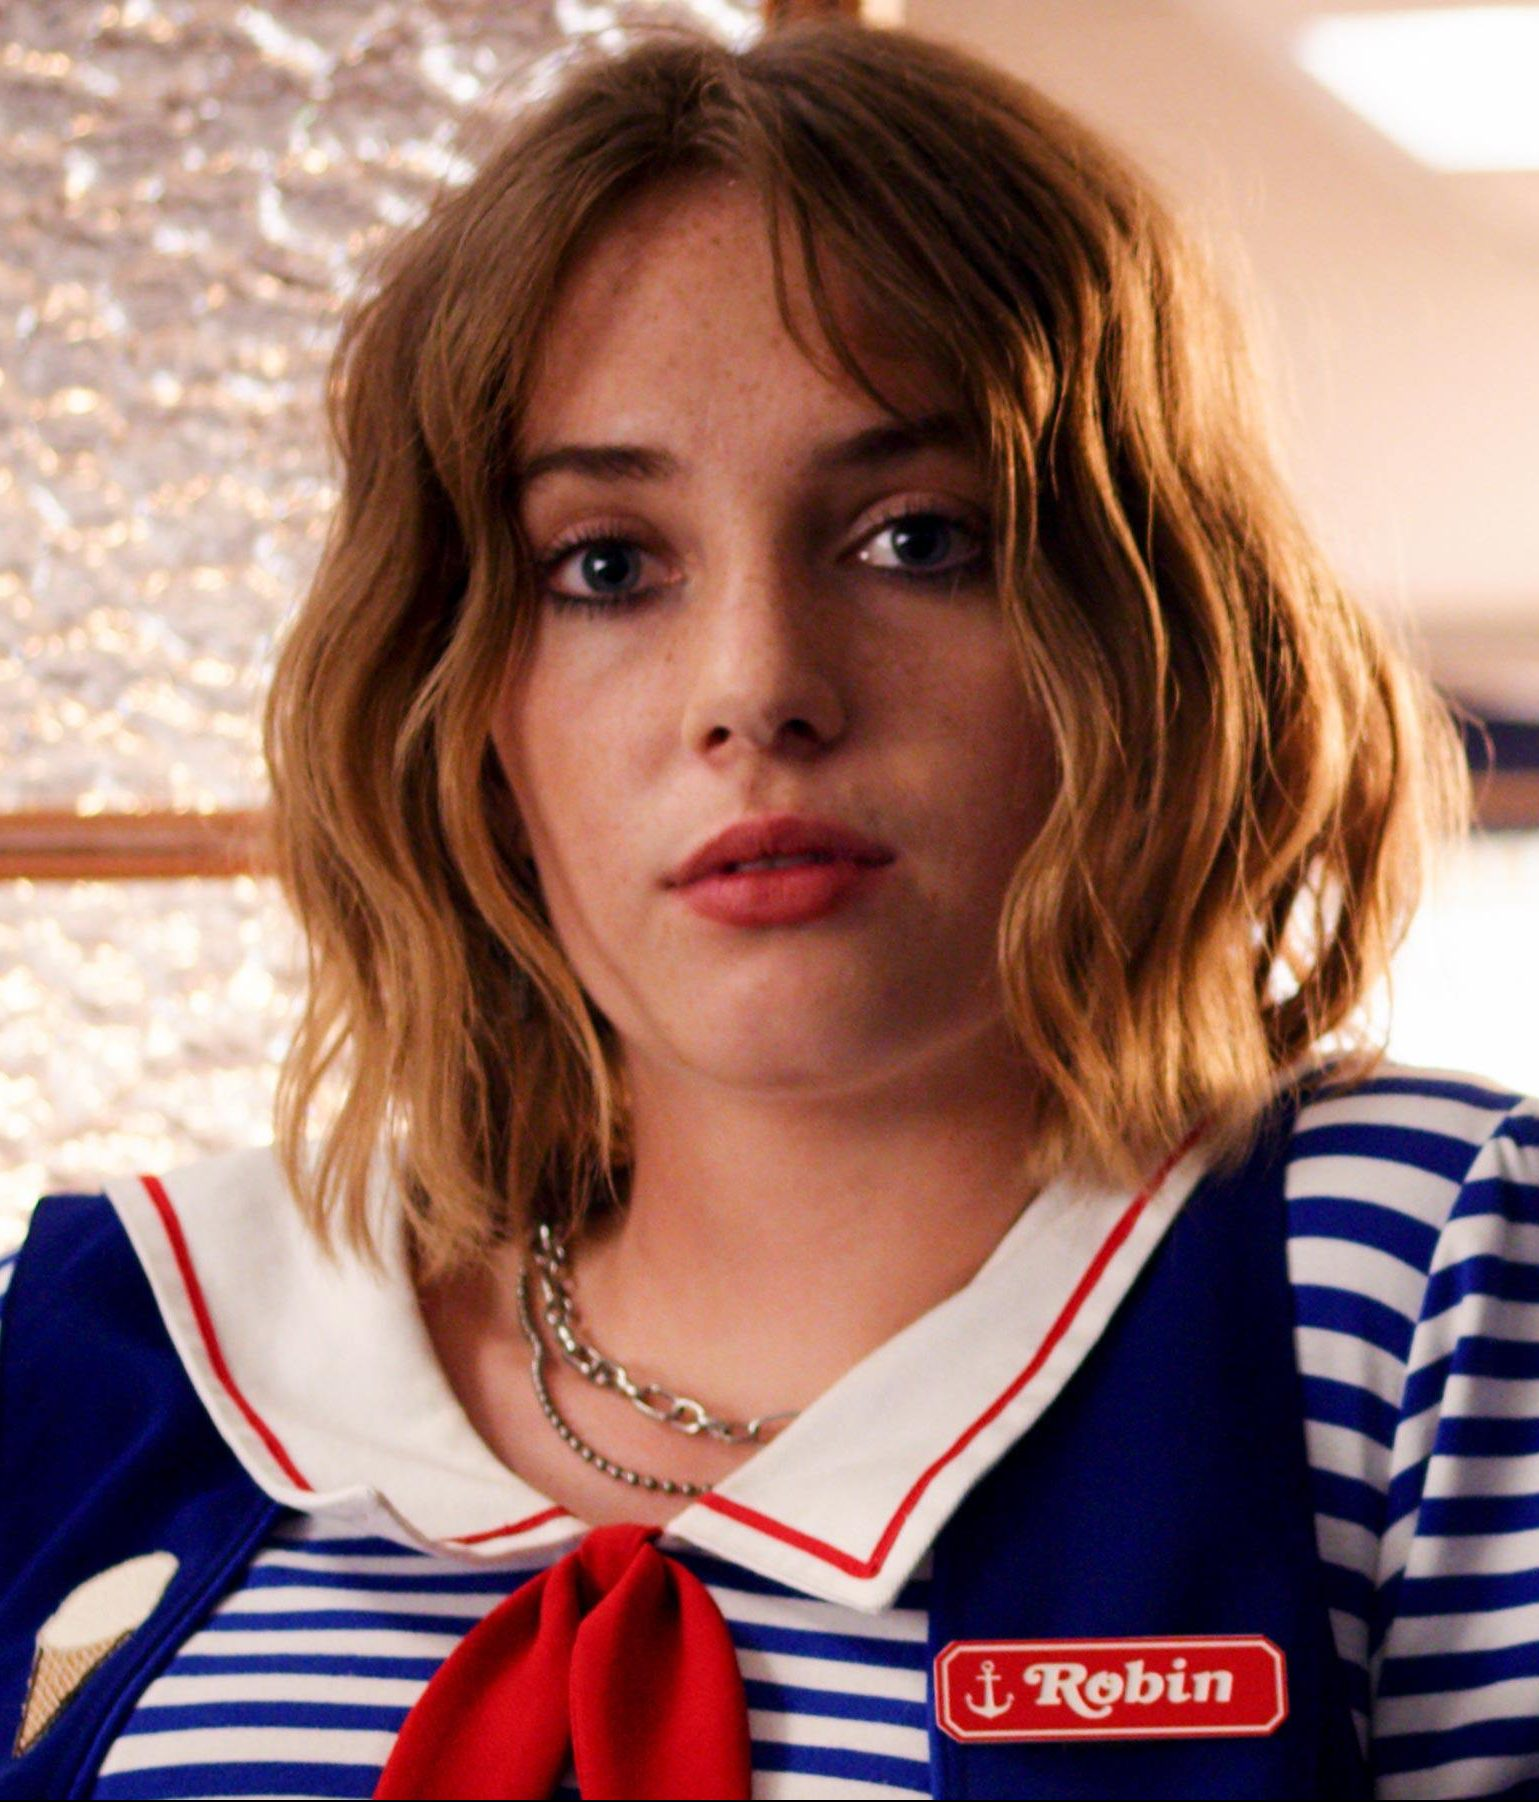 stranger 13 e1562319687586 20 Things You Never Knew About The Stranger Things Cast In Real Life